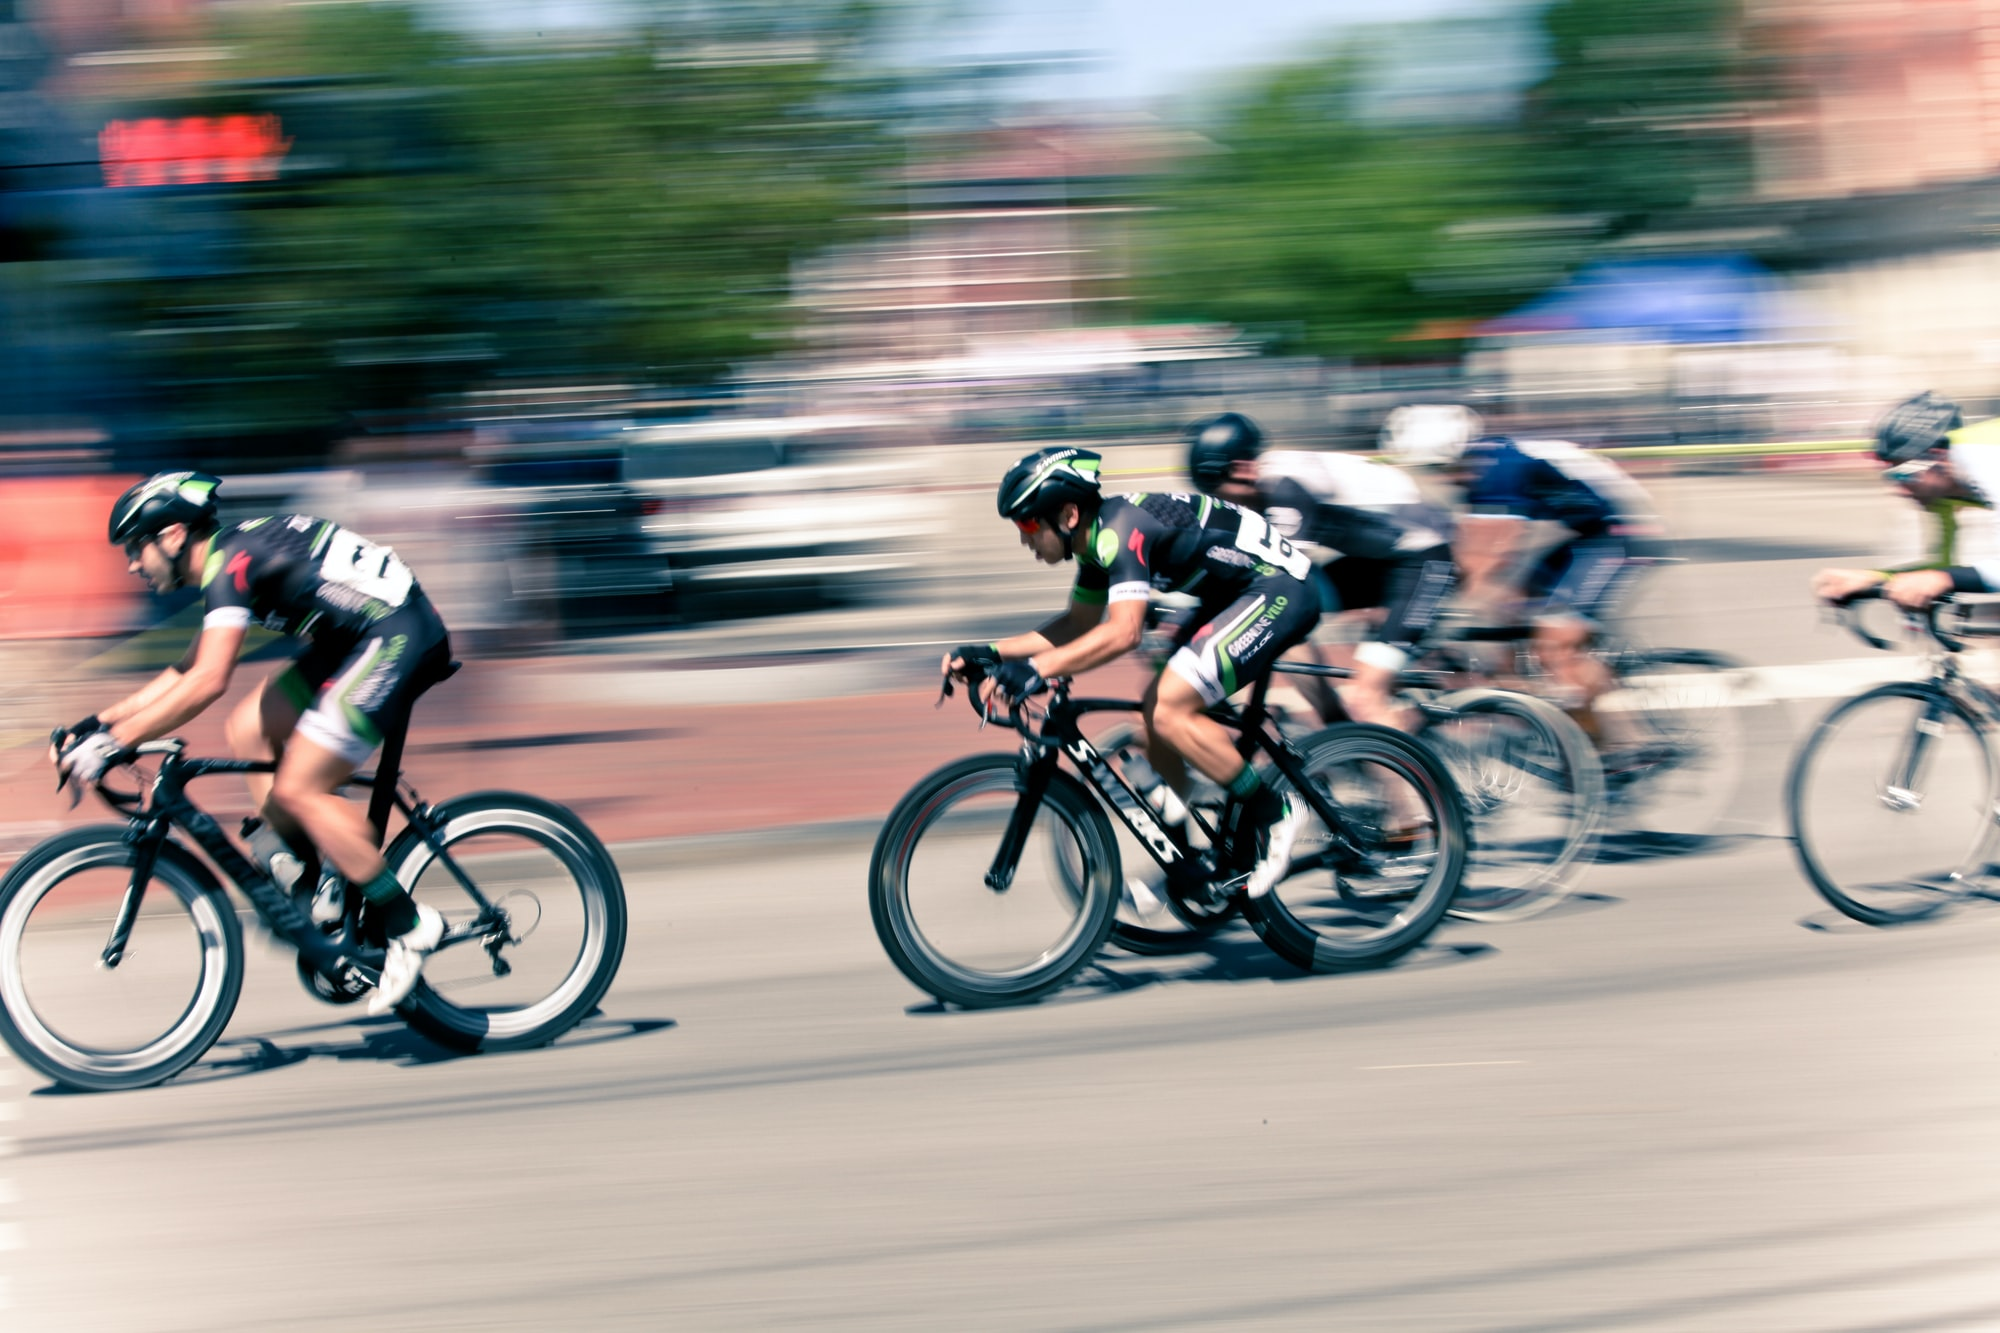 Annual Portsmouth Criterium. A yearly road race used to be held on closed city streets in September.